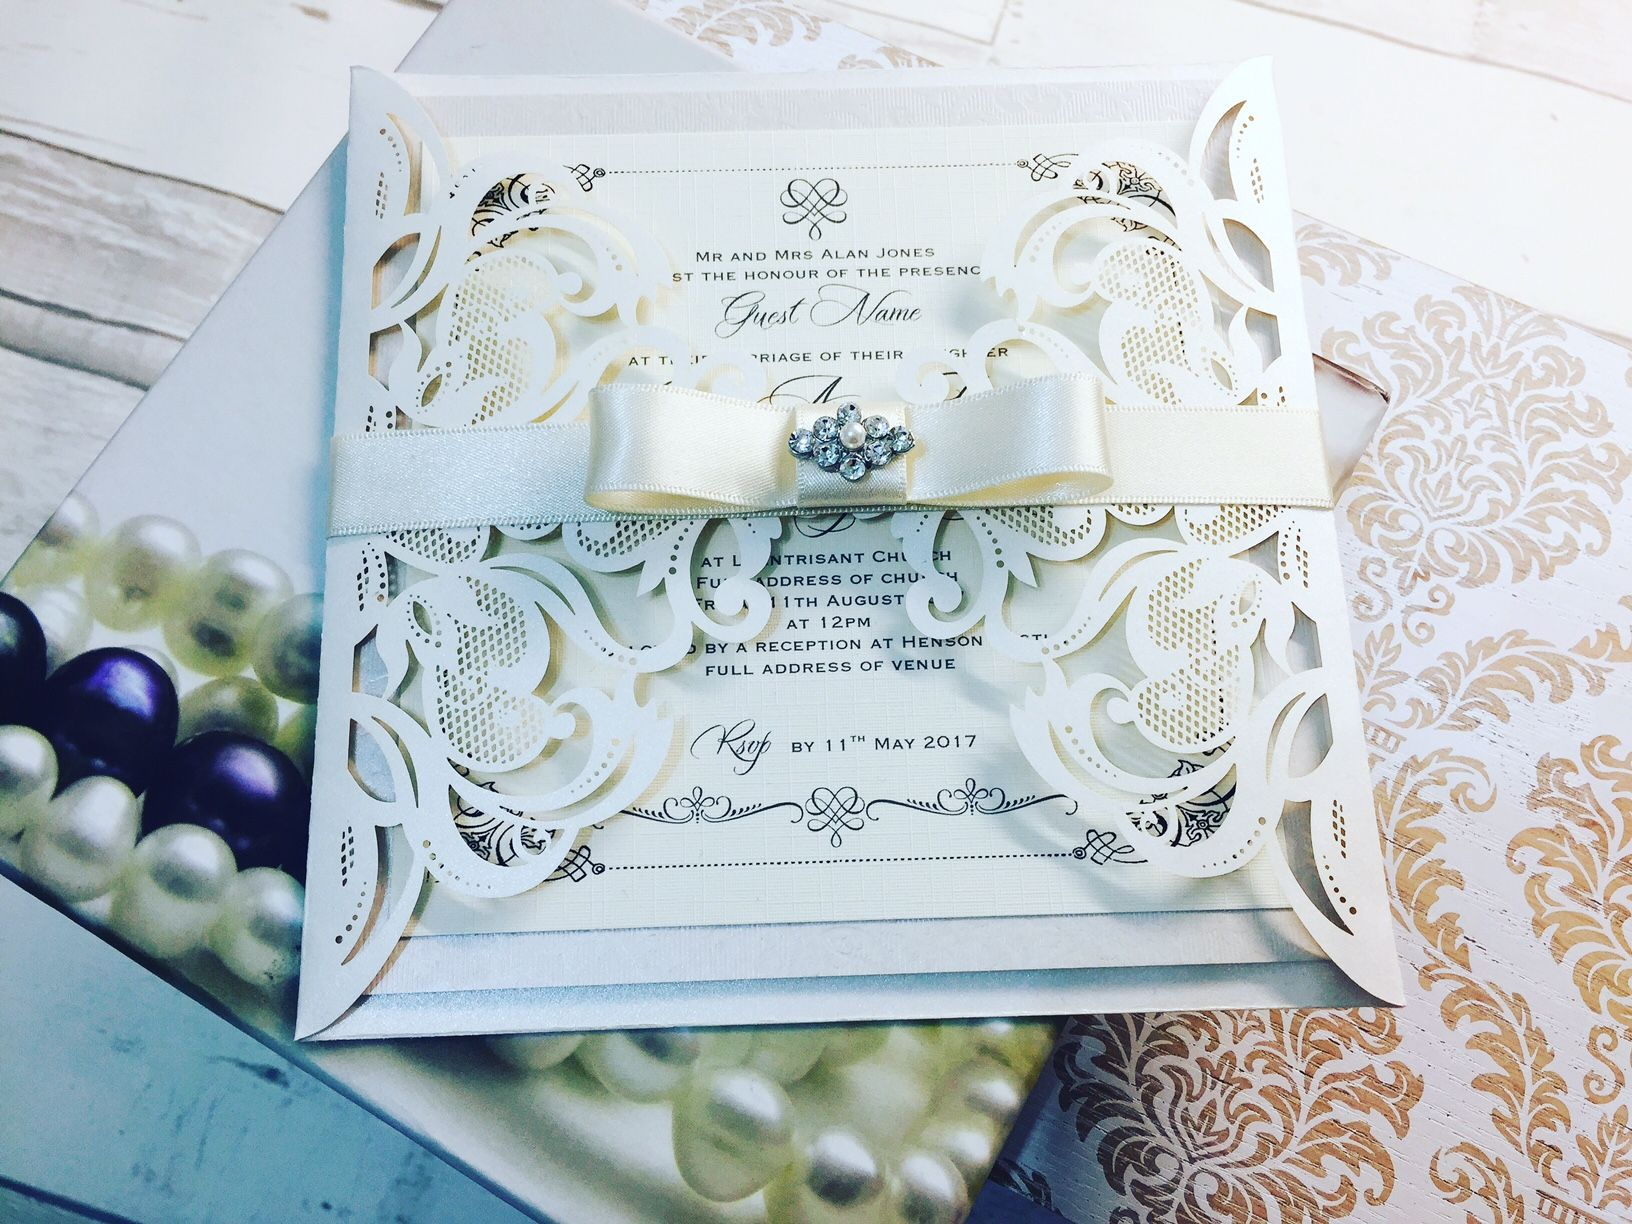 Luxury boxed wedding invitations handmade with elegant brooches and ribbons